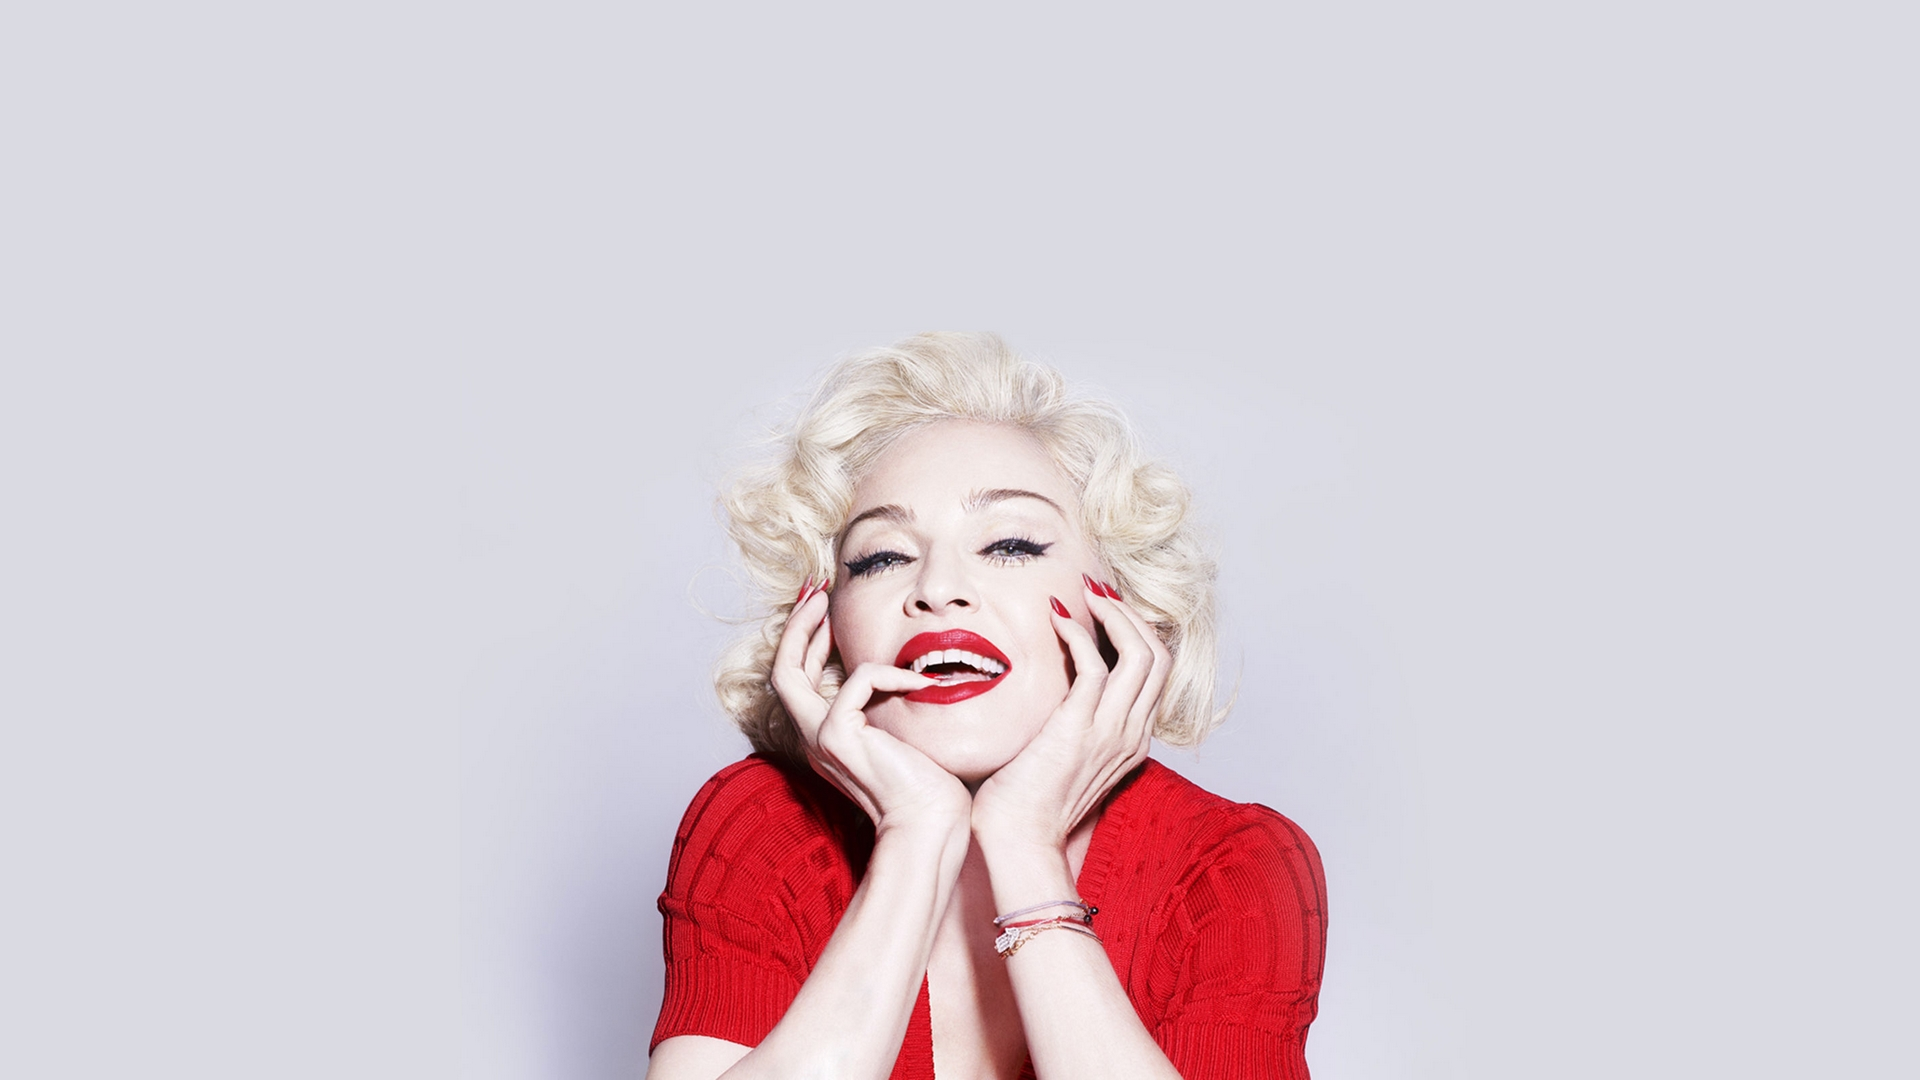 Madonna hd wallpaper background image 1920x1080 id - Madonna hd images ...